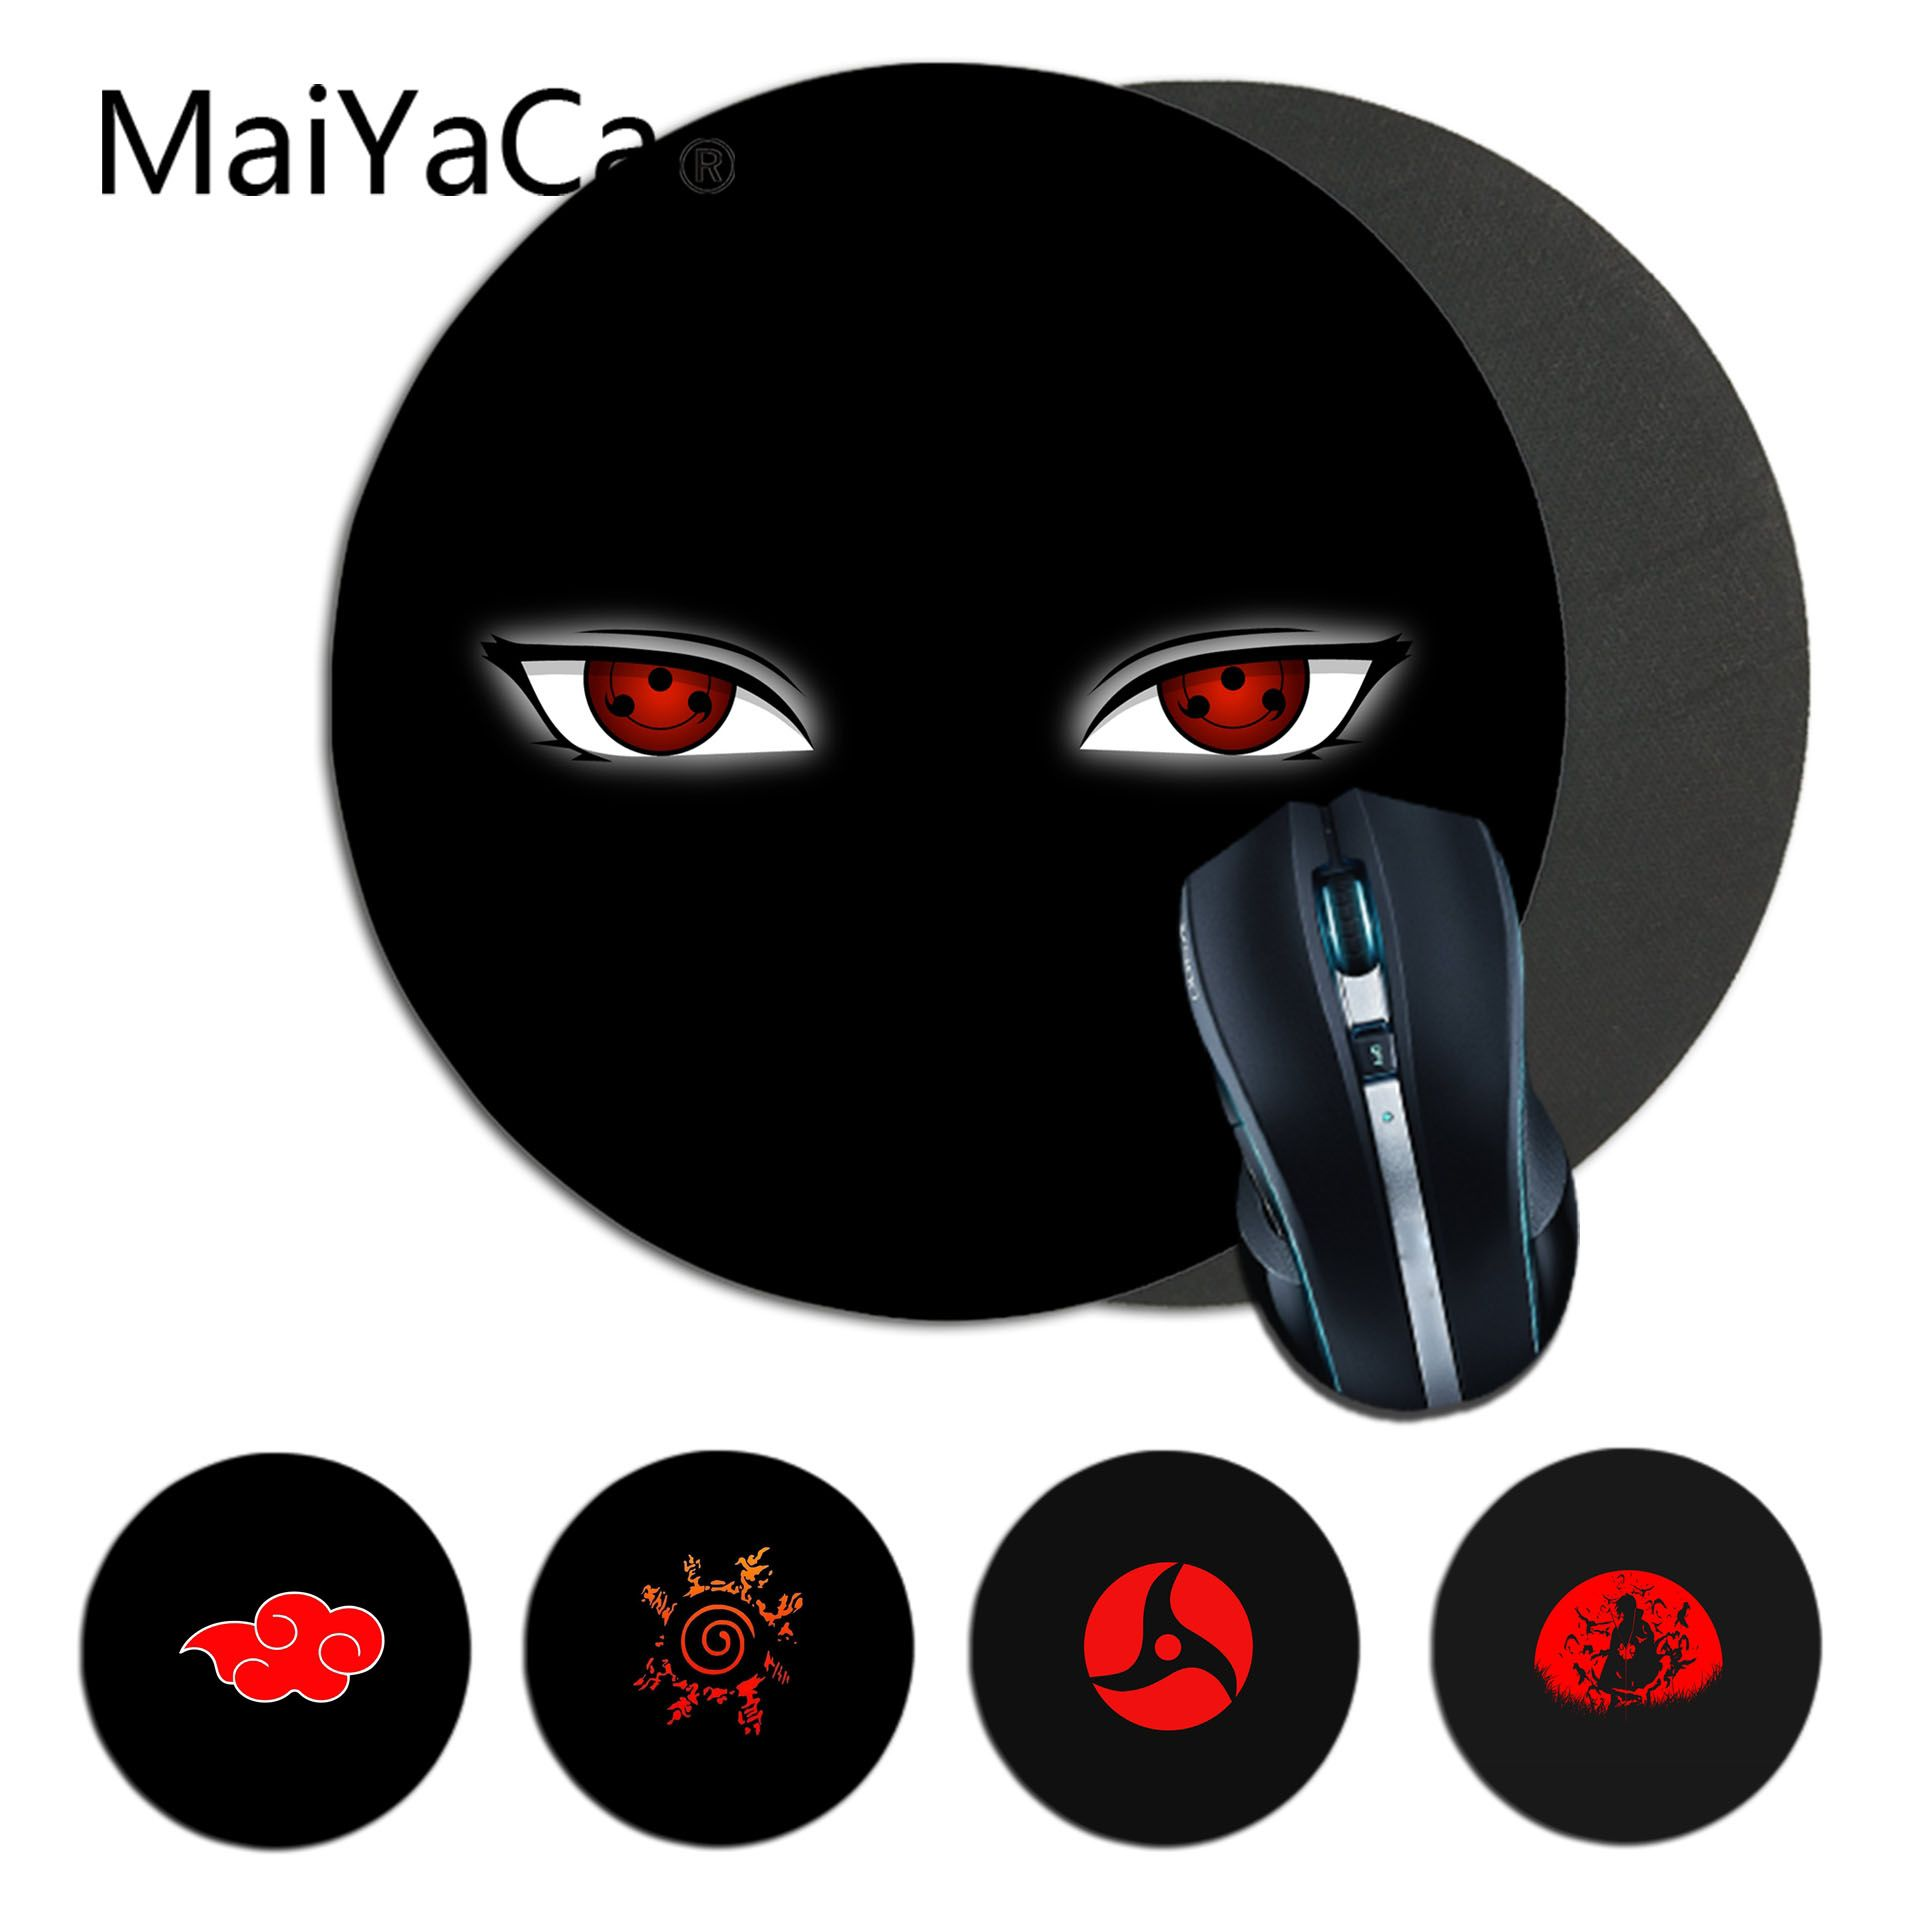 Maiyaca Naruto Itachi Uchiha DIY Design Pattern Game Round Mousepad Gaming Mouse Pad Rug For PC Laptop Notebook Gamer Desk Pad